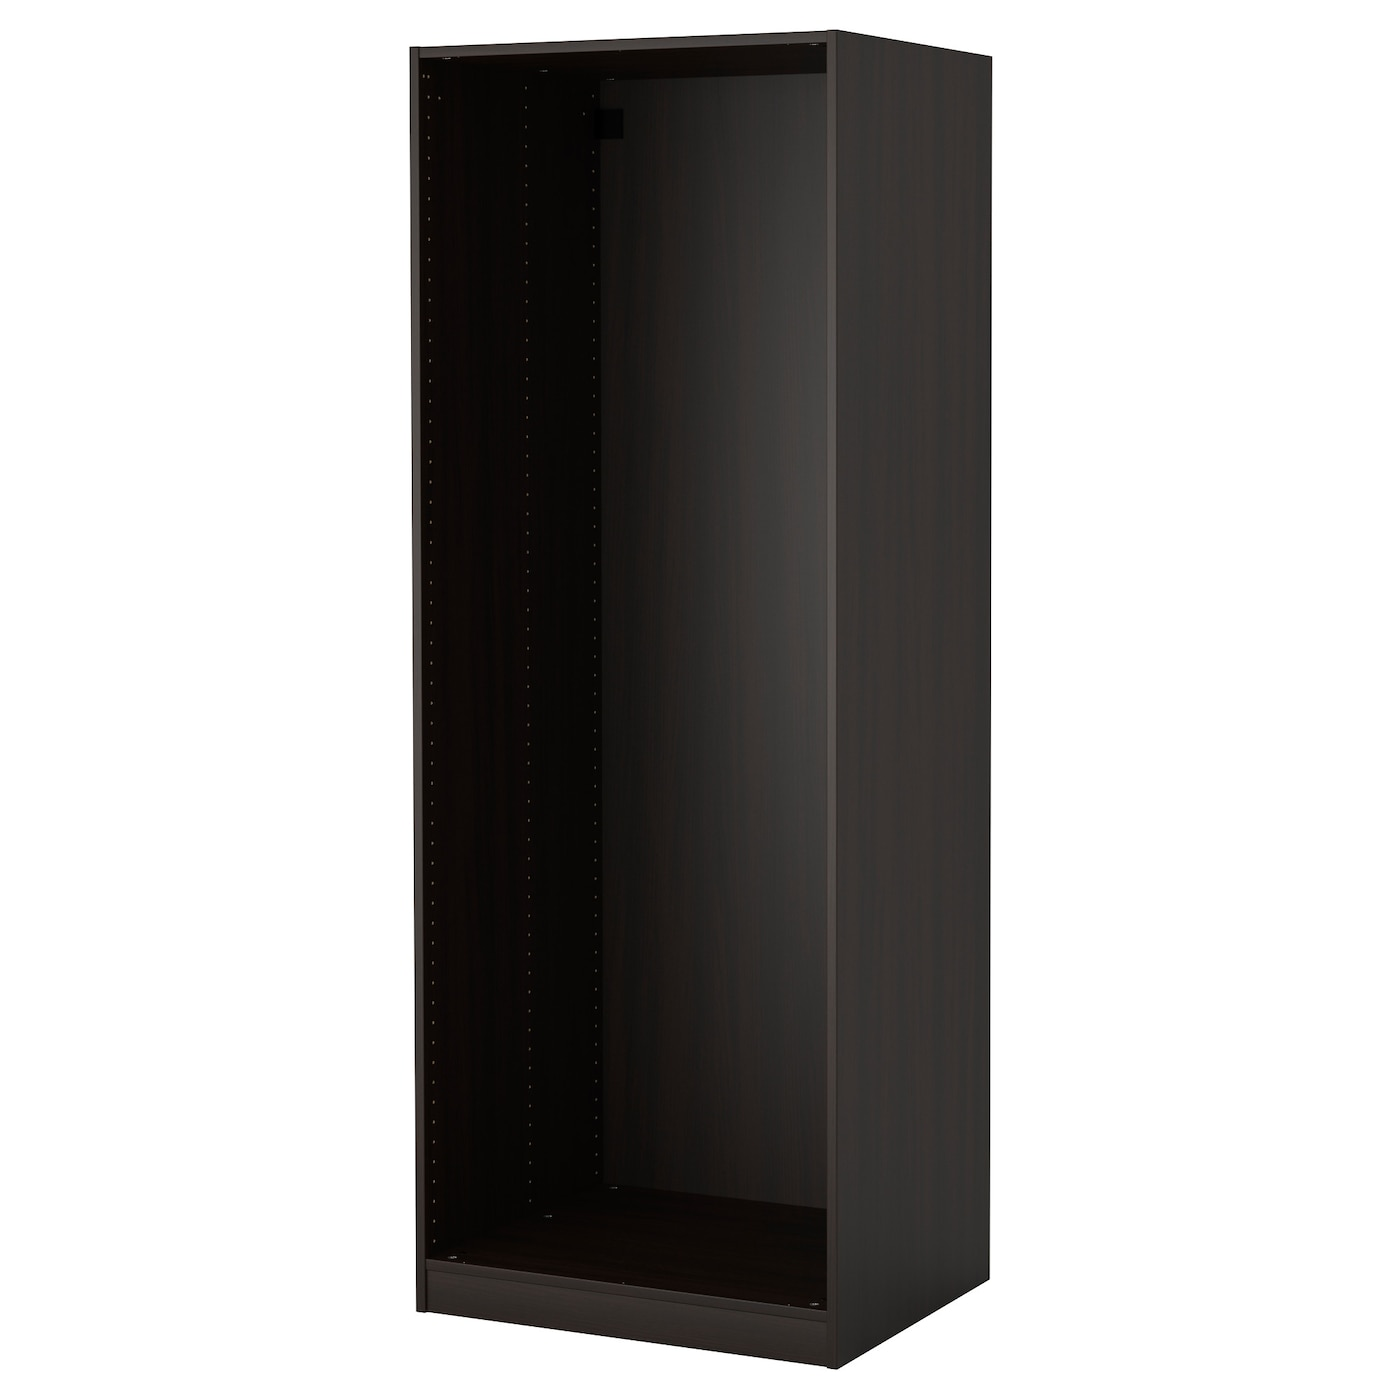 pax caisson d 39 armoire brun noir 75 x 58 x 201 cm ikea. Black Bedroom Furniture Sets. Home Design Ideas